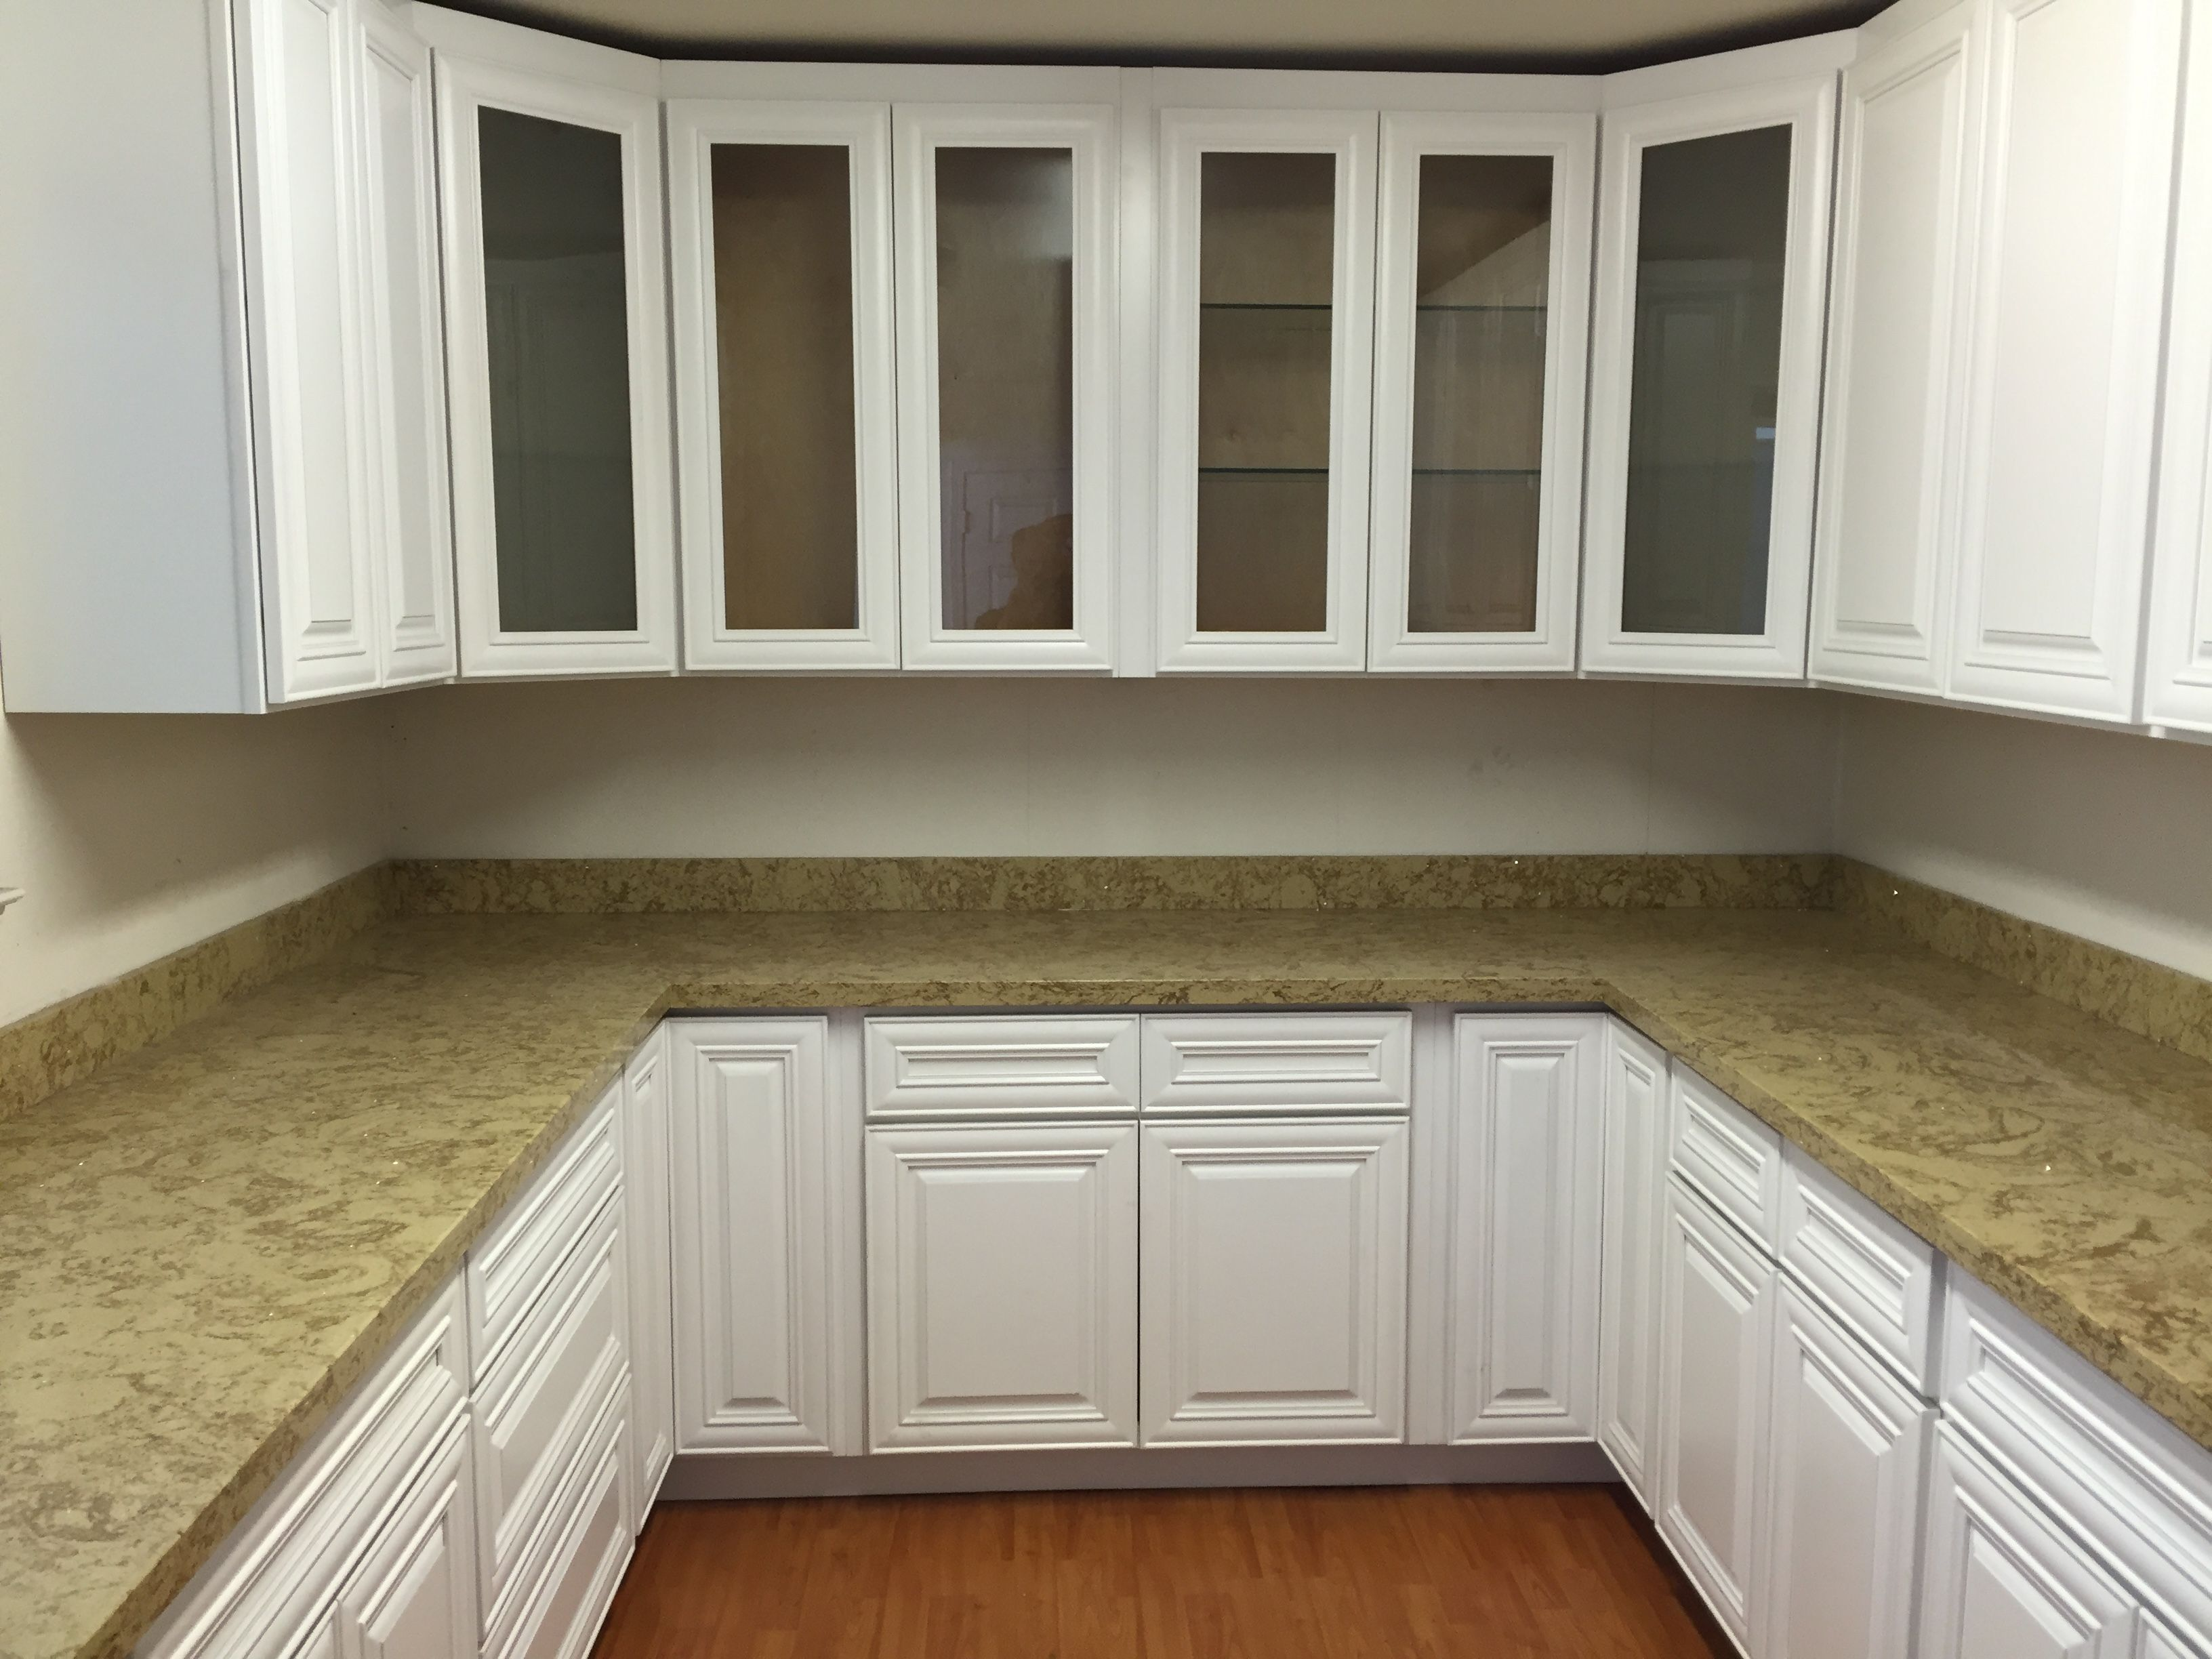 Slab kitchen cabinets  Image result for raised panel cabinets with slab drawers white